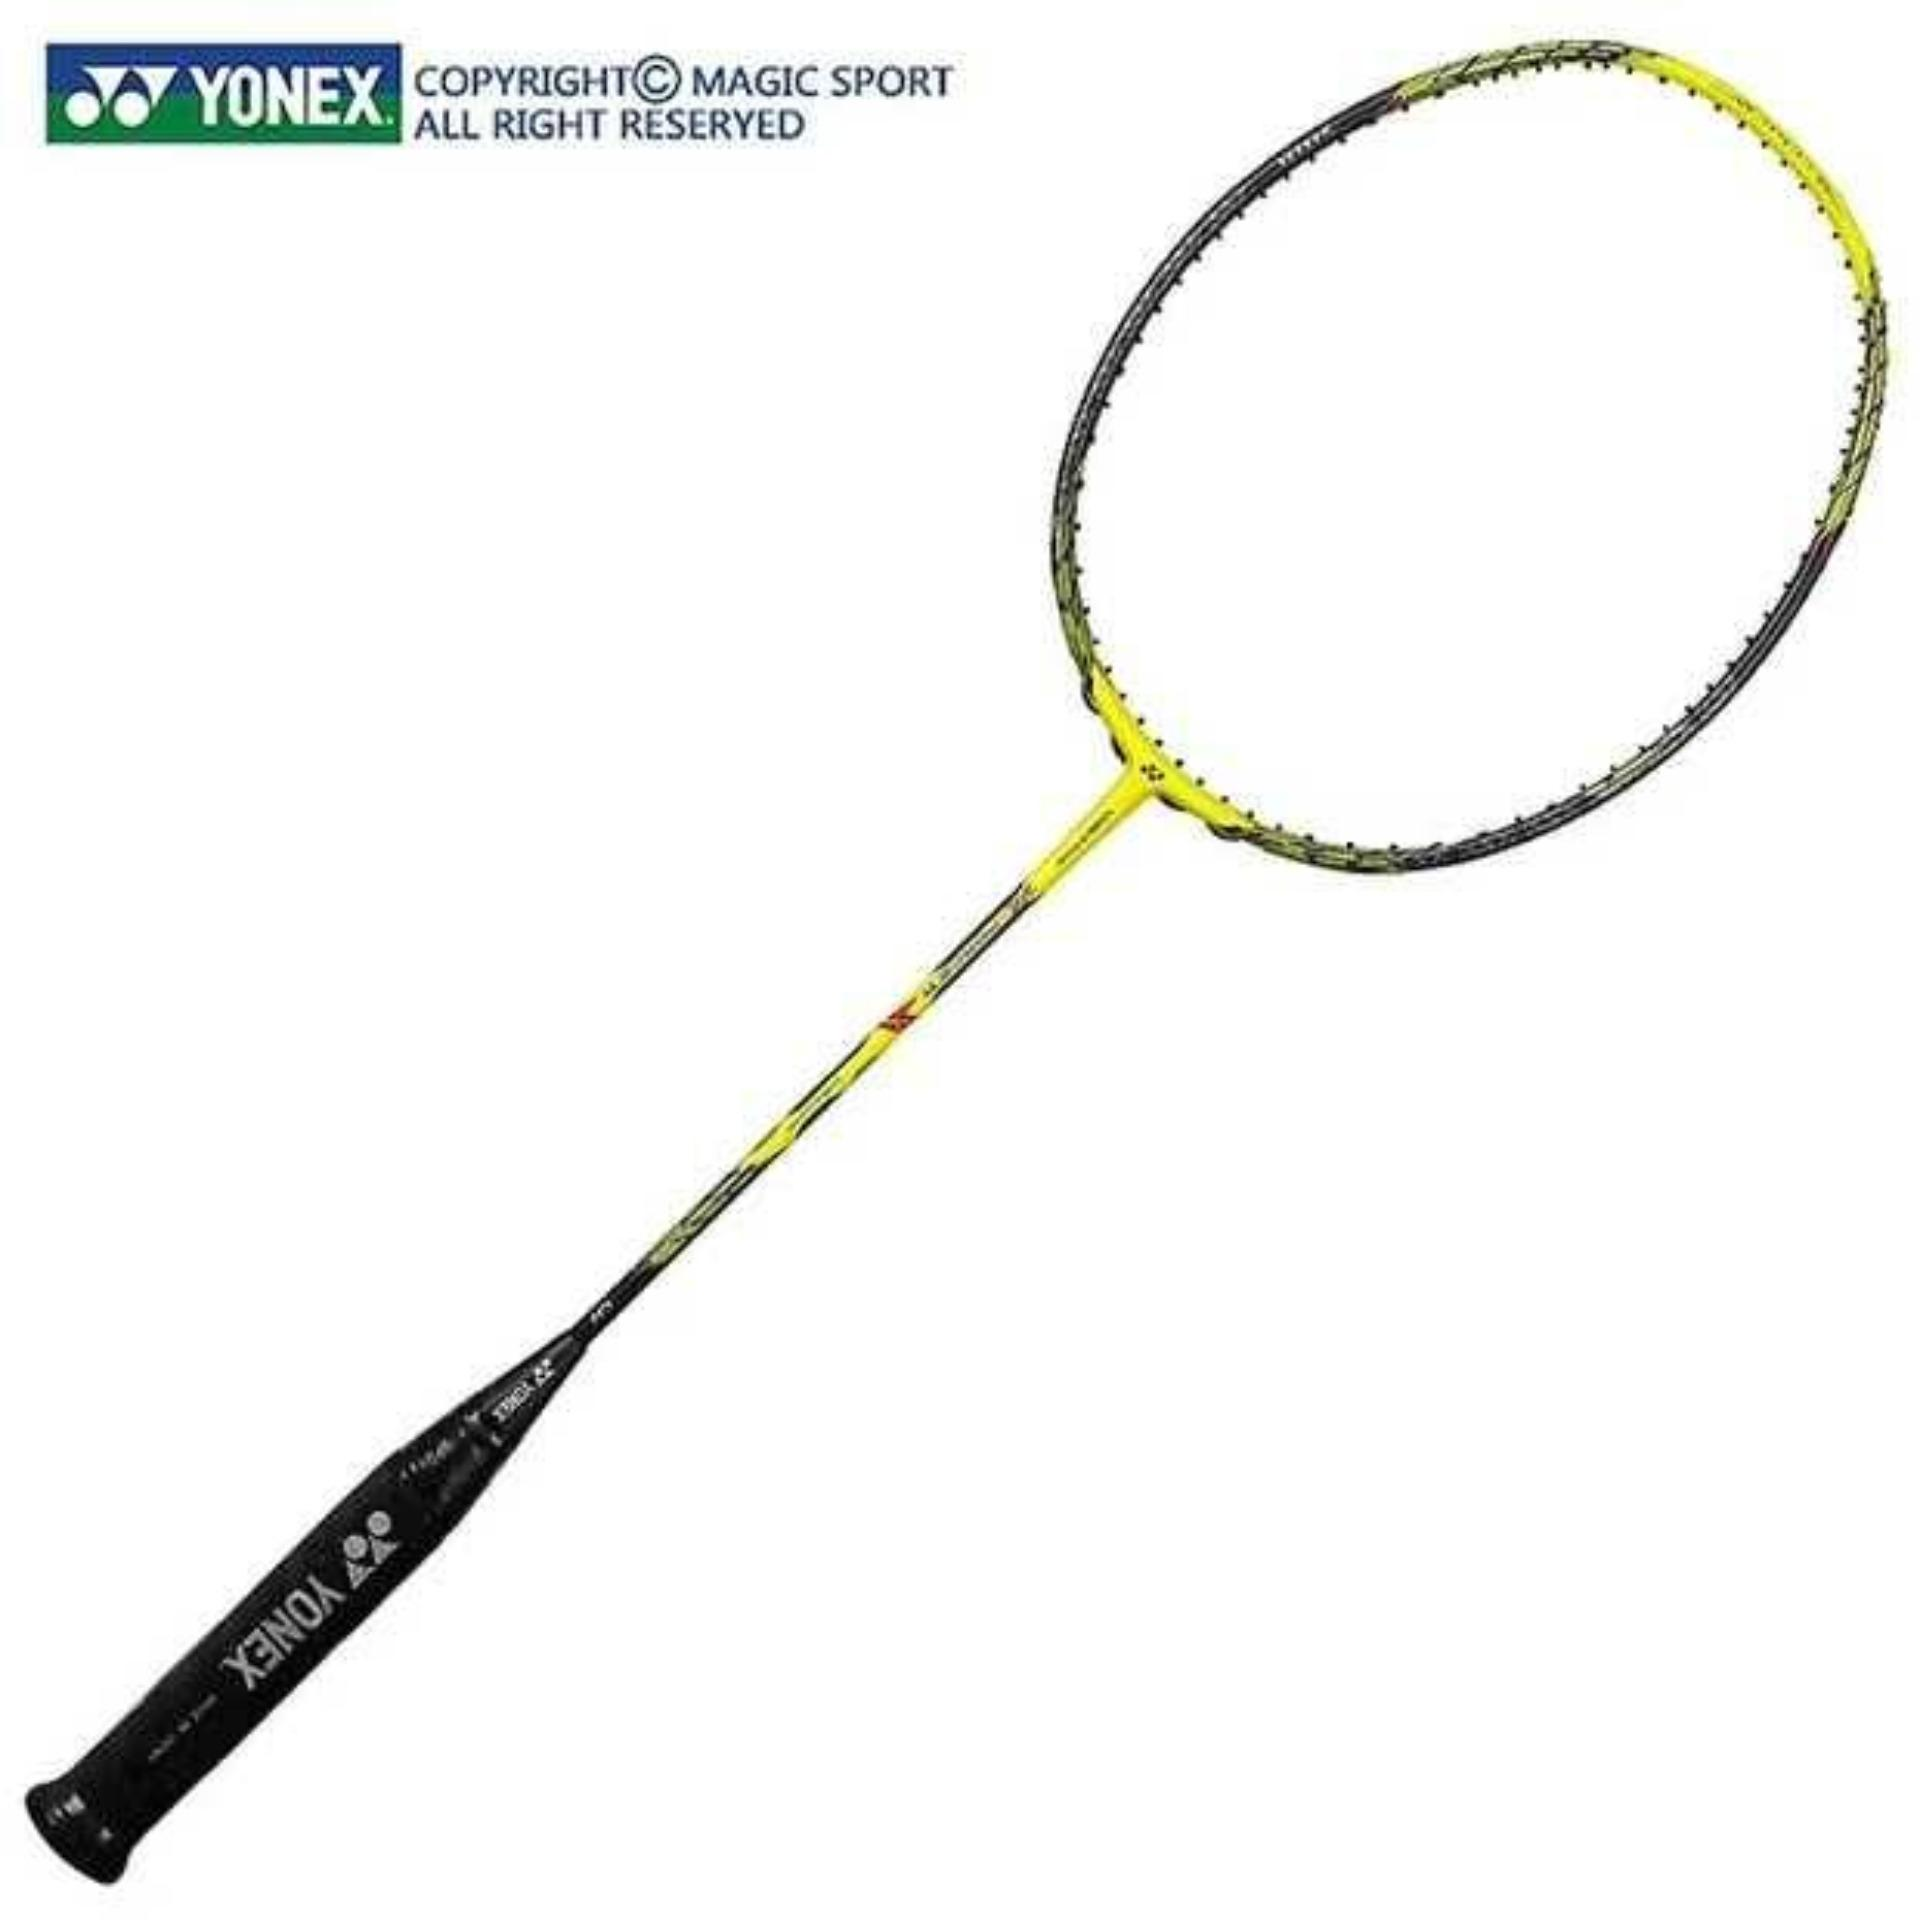 YONEX Voltric Z Force 2 VTZF-2LD 4U Full Carbon Single Badminton Racket with Even Nails 26-30Lbs Suitable for Professional Player Training Buy 1Get 3 Gifts